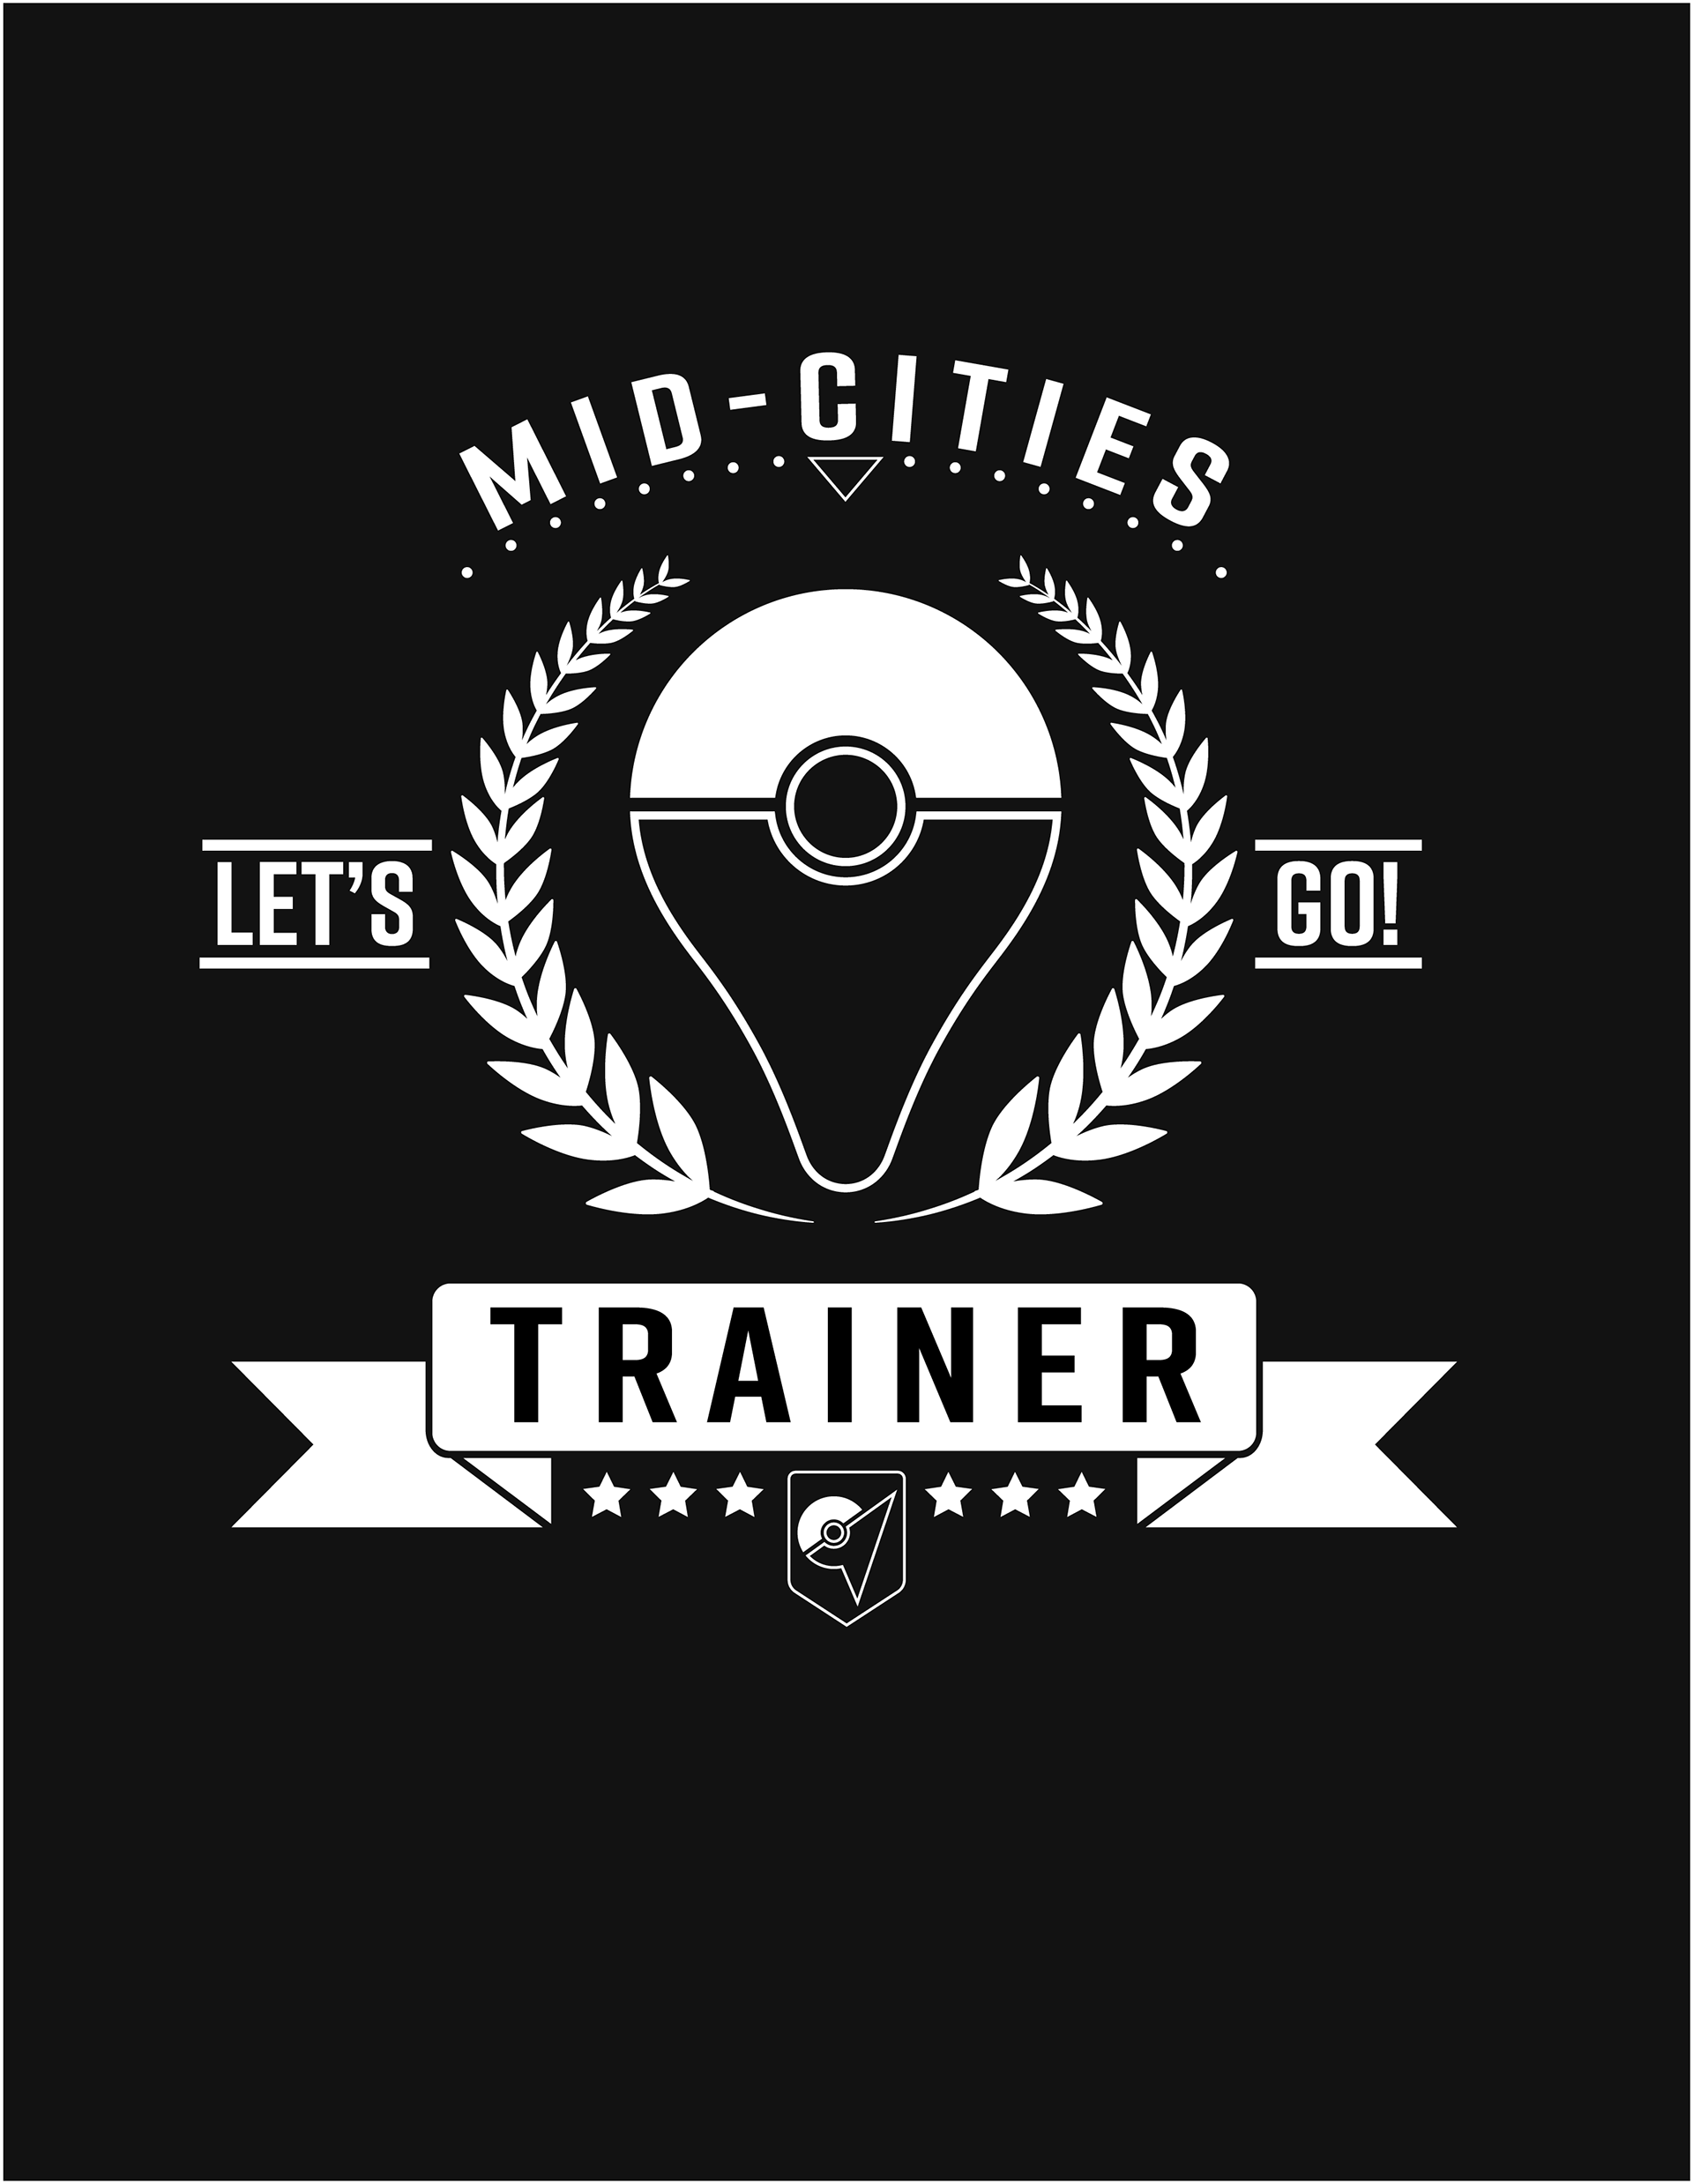 2c76234c T-Shirt Design: Mid-Cities Pokemon Go Group on Behance